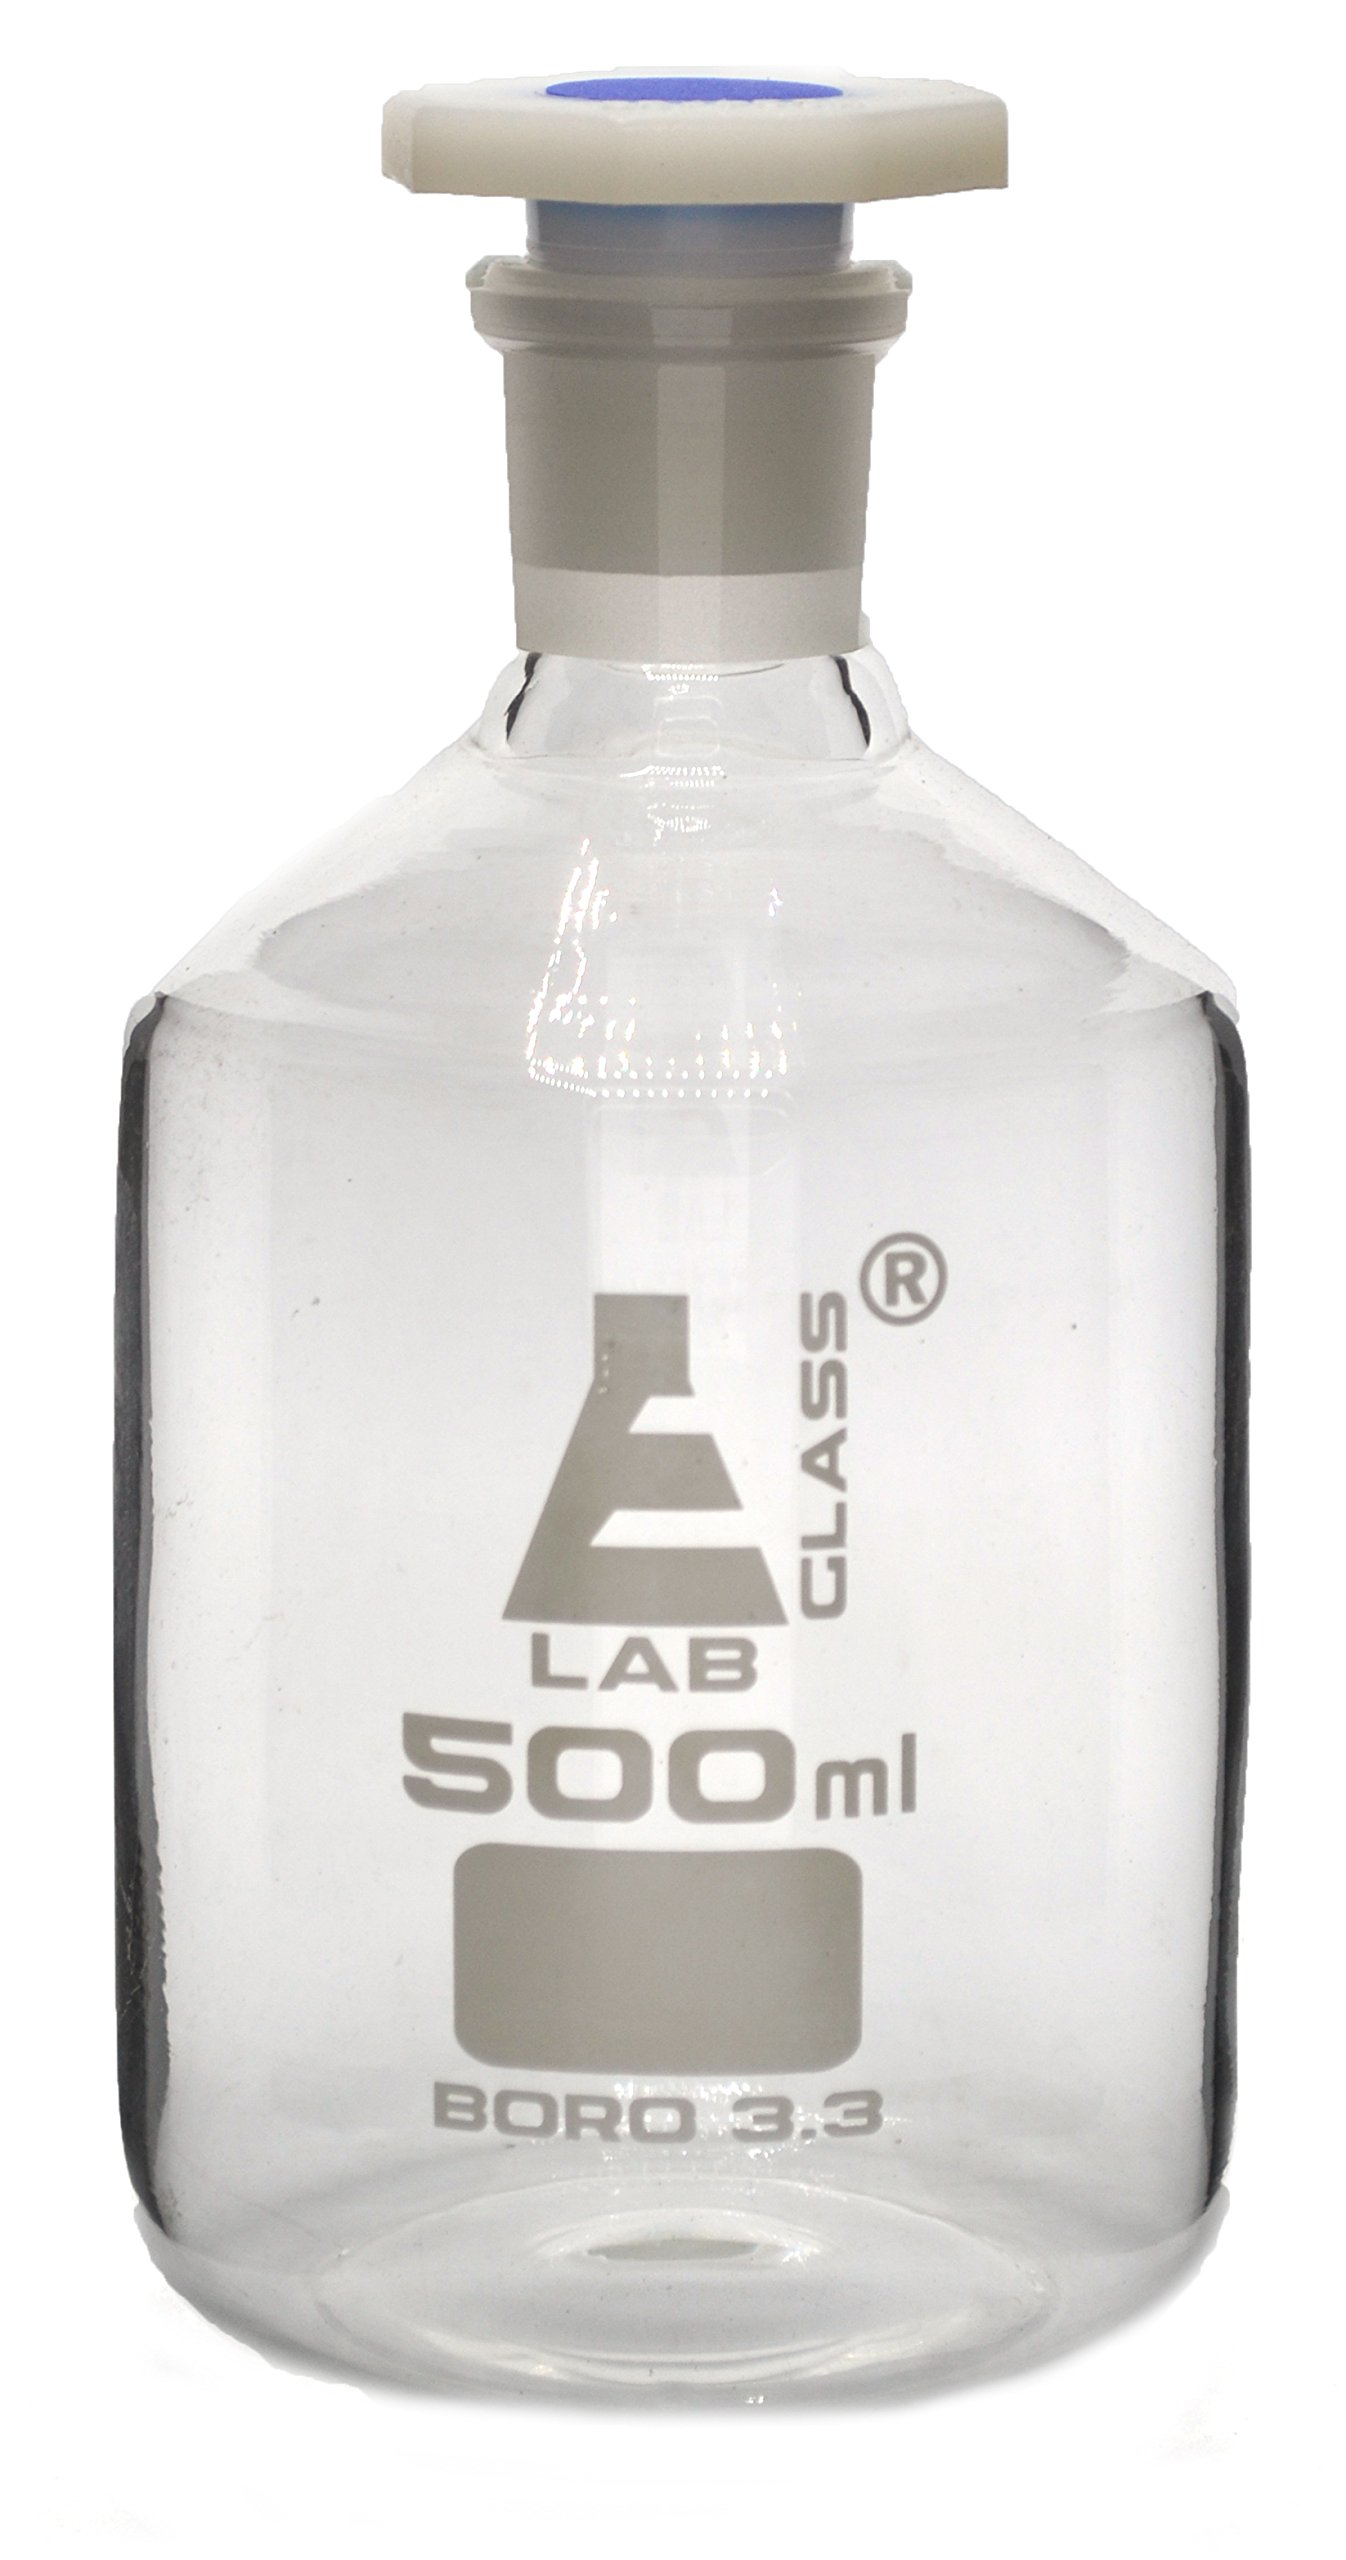 500mL (16.9oz) Glass Reagent Bottle with Acid Proof Polypropylene Stopper, Borosilicate 3.3 Glass - Eisco Labs by EISCO